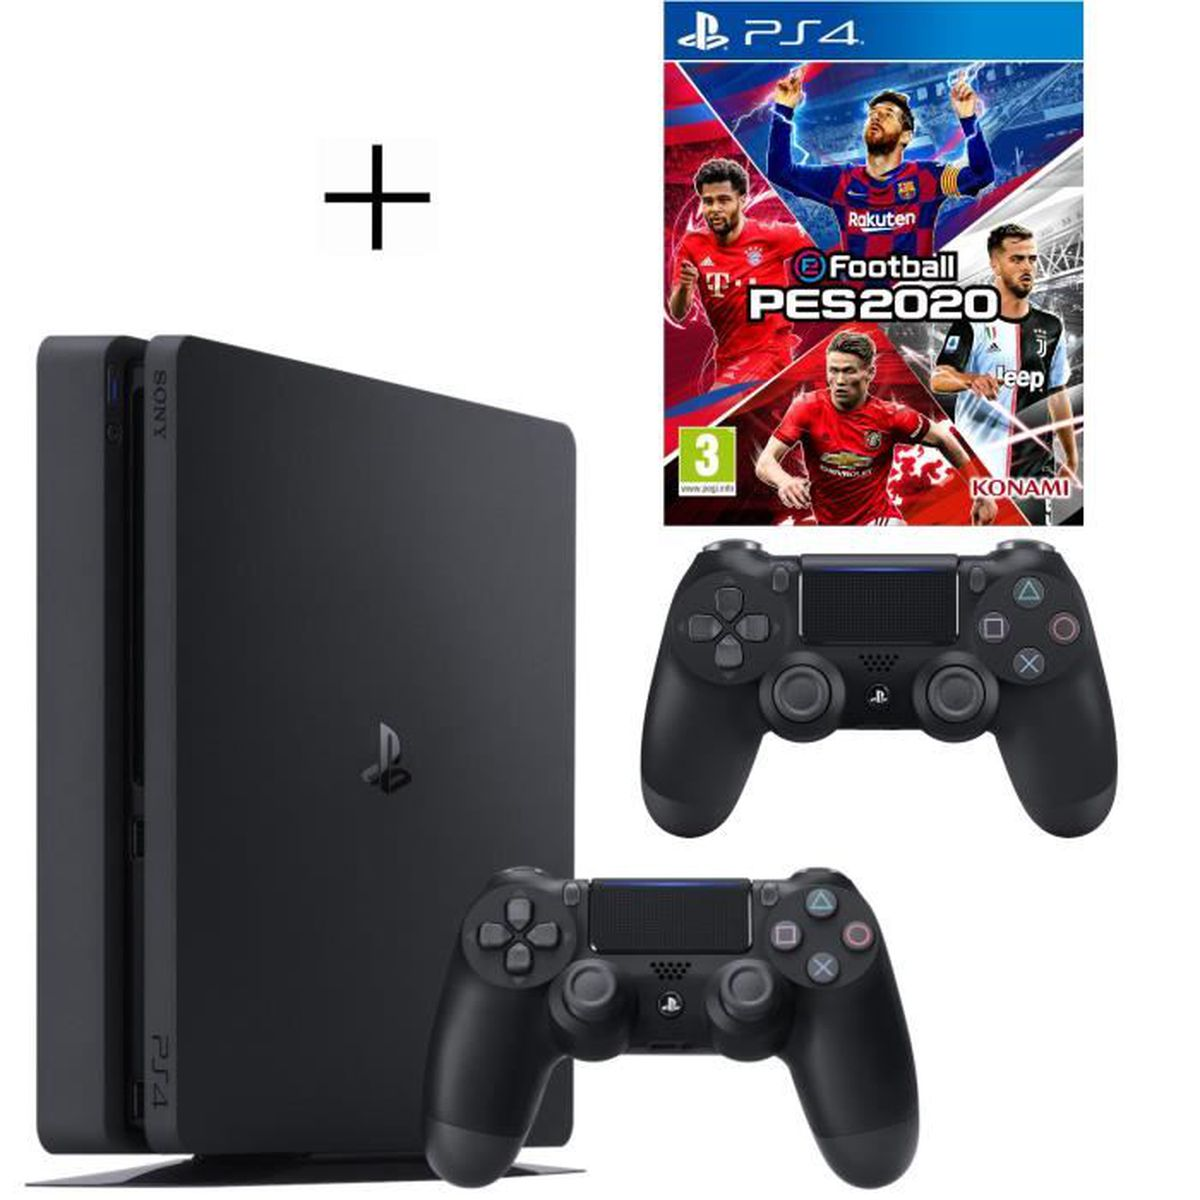 CONSOLE PS4 Pack Playstation : PS4 500Go + eFootball PES 2020